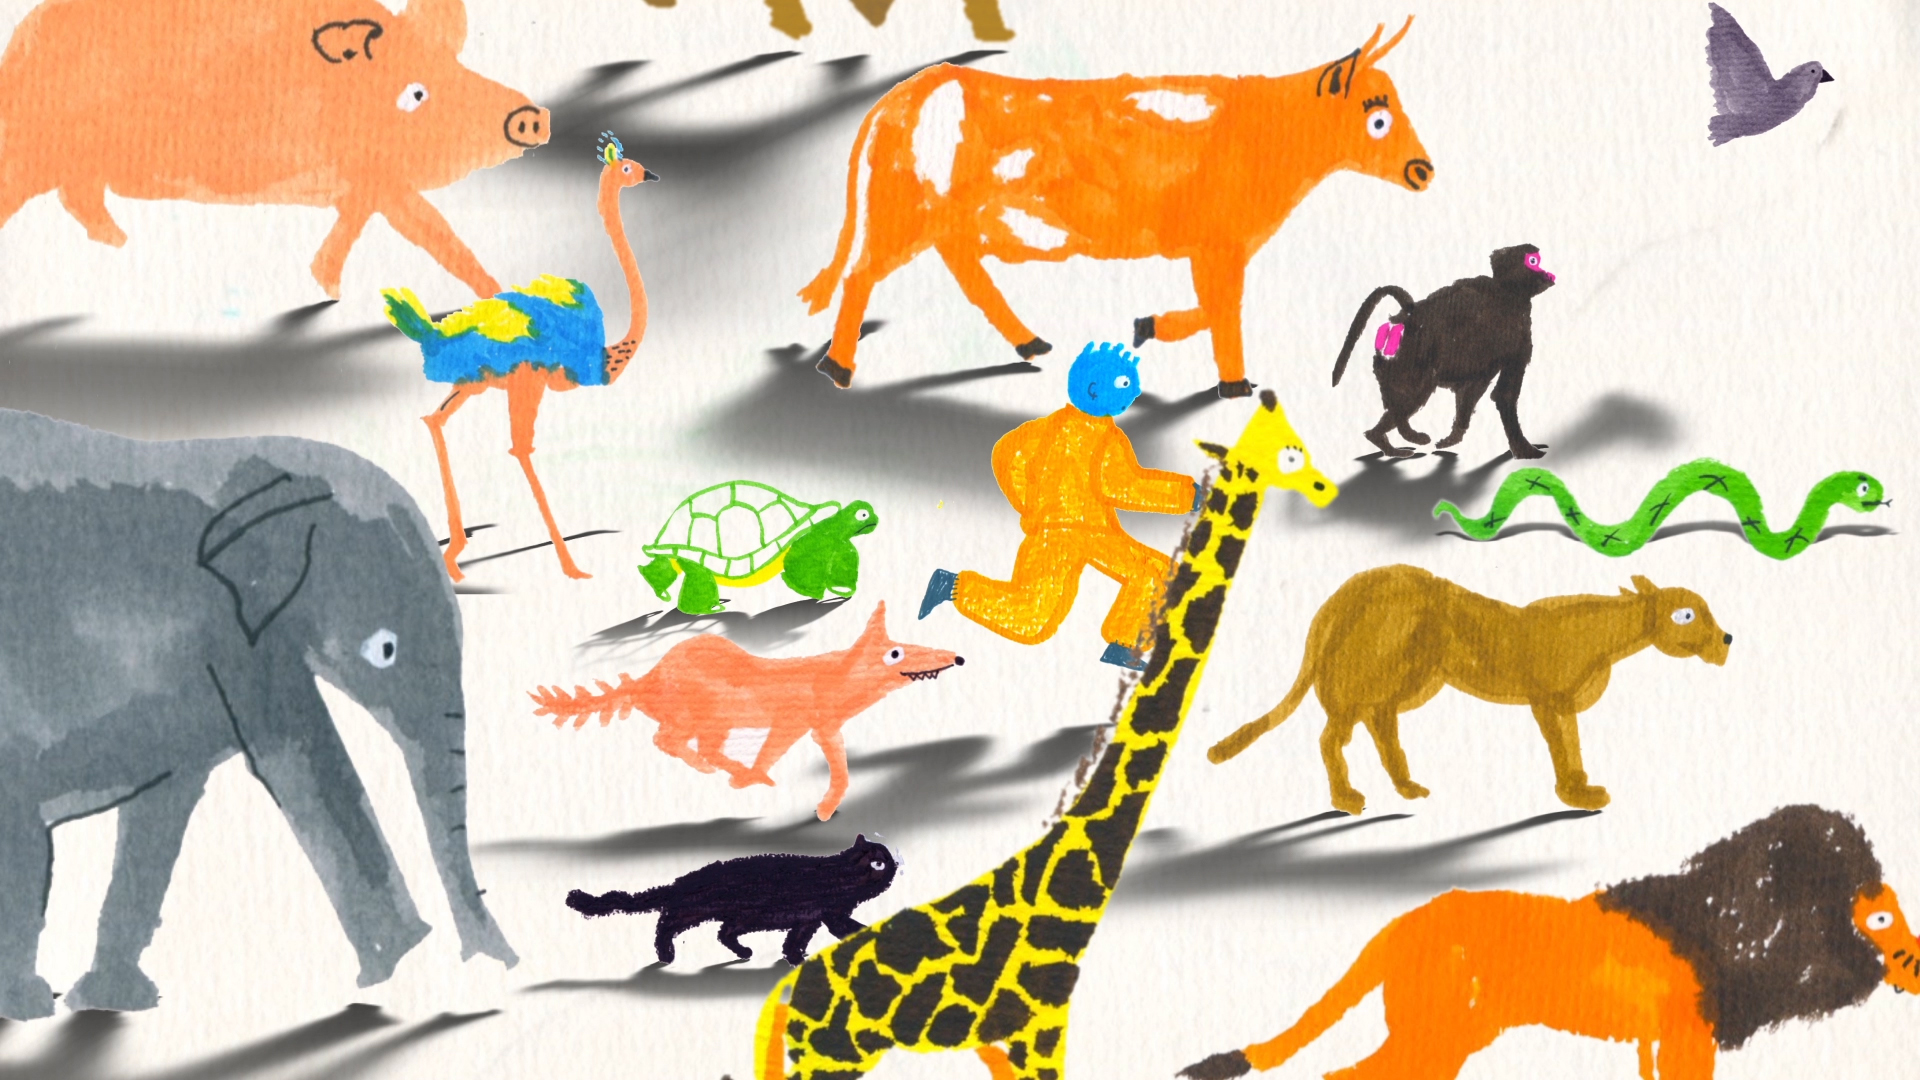 Animation still of man running among animals like a turtle, fox, elephant, ostrich, cat, snake, and baboon